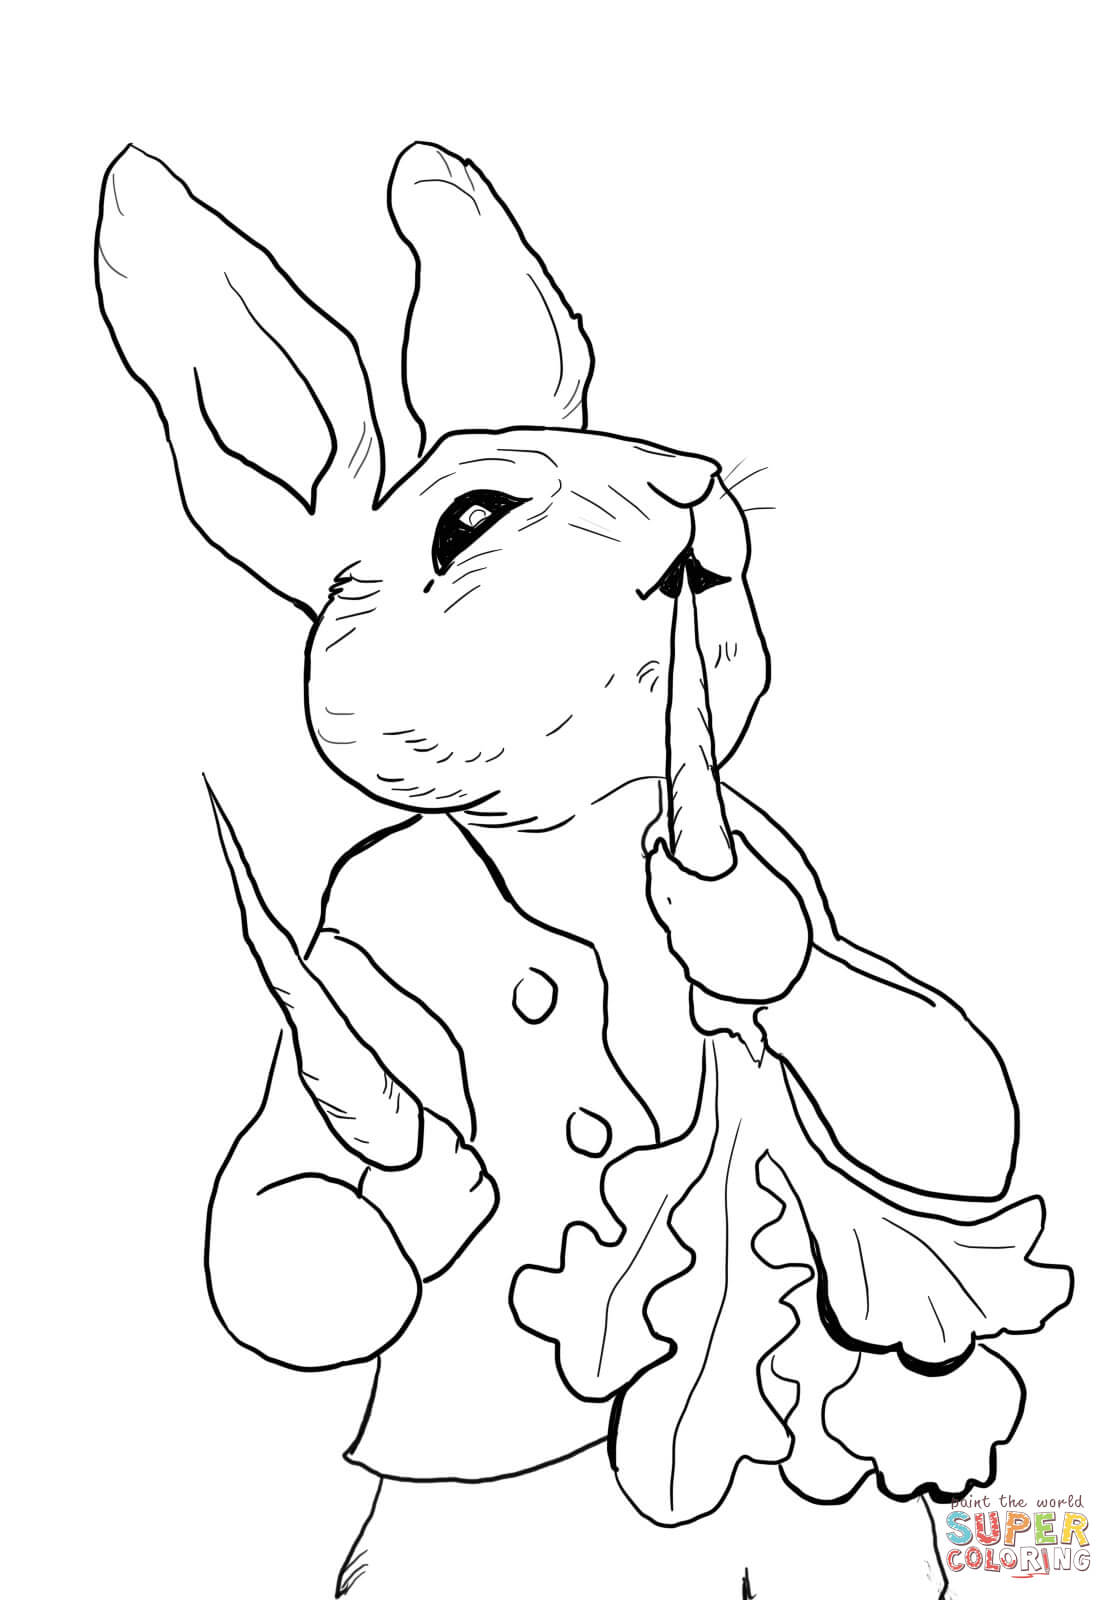 Peter Rabbit Eating Radishes Coloring Page